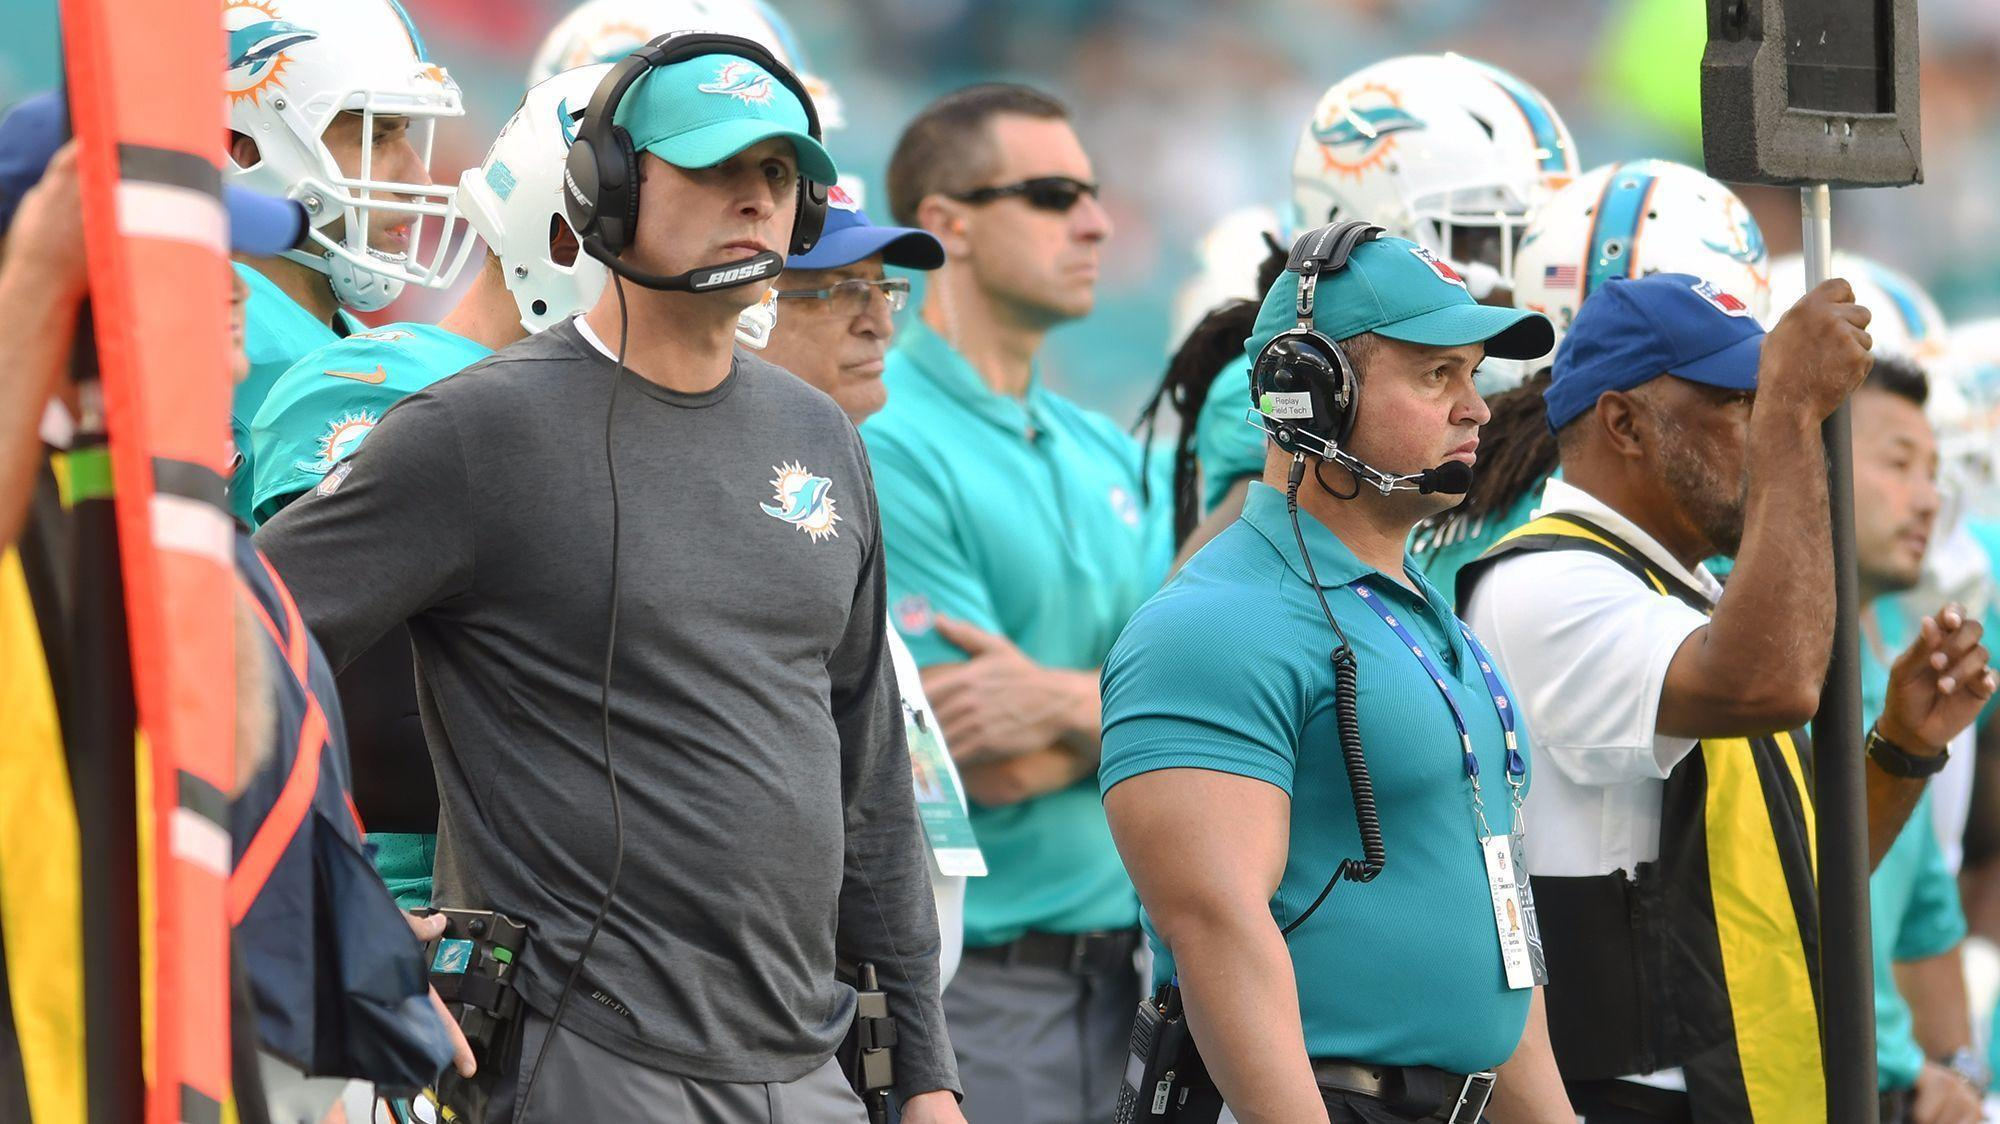 Fl-sp-dolphins-notes-20171203